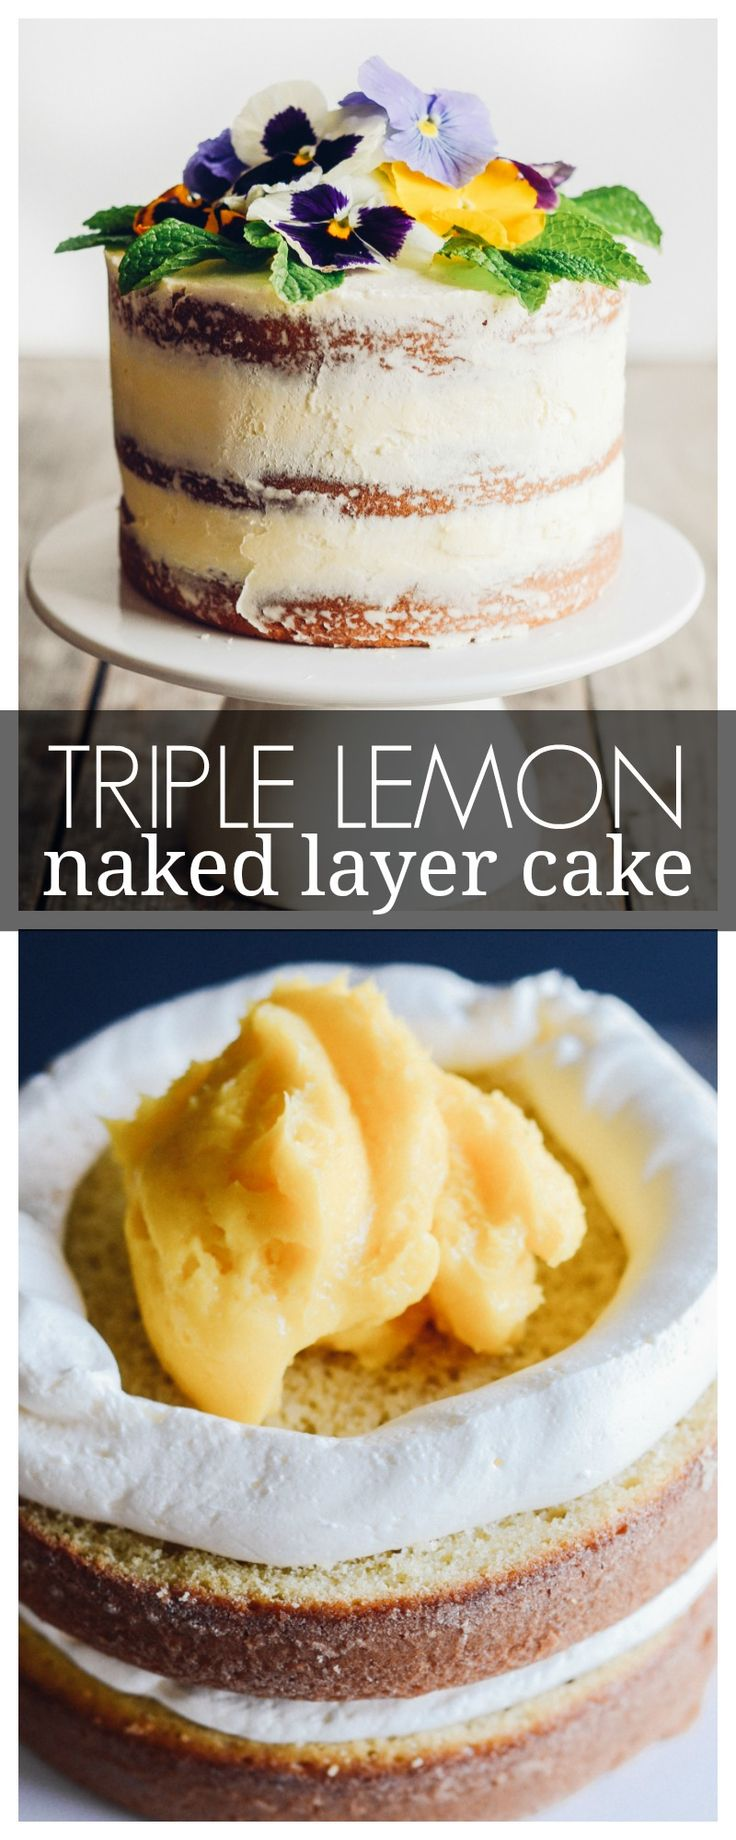 Triple Lemon Naked Layer Cake with Pansies | Recipe | Layer cakes ...